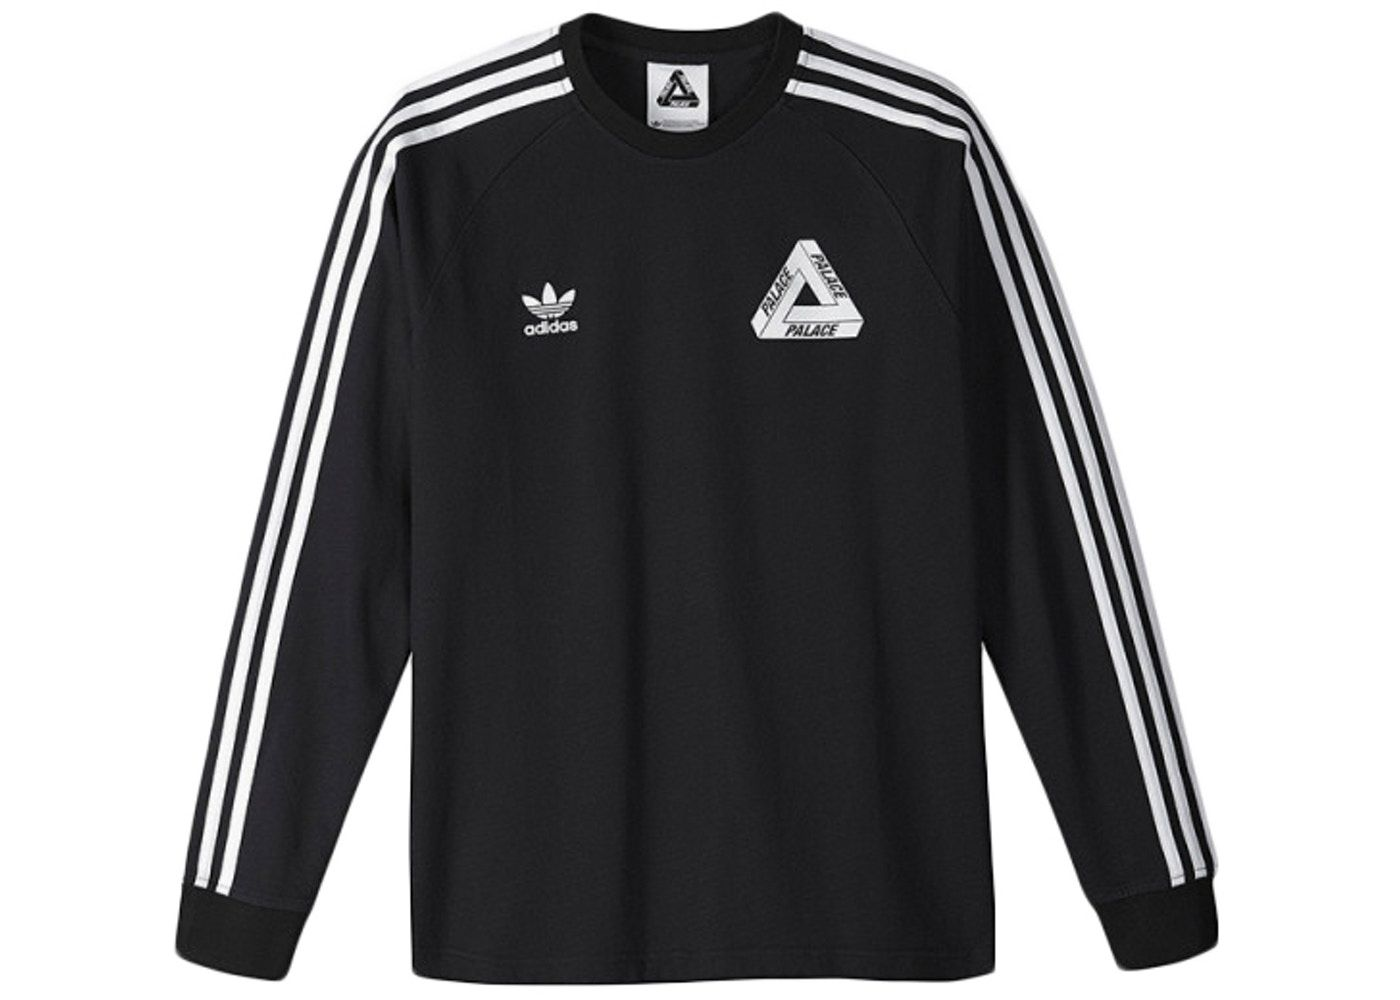 f8663594d5 Palace Adidas X Palace long sleeve T-shirt | streetwear fashion | Adidas,  Adidas long sleeve shirt, Adidas shirt